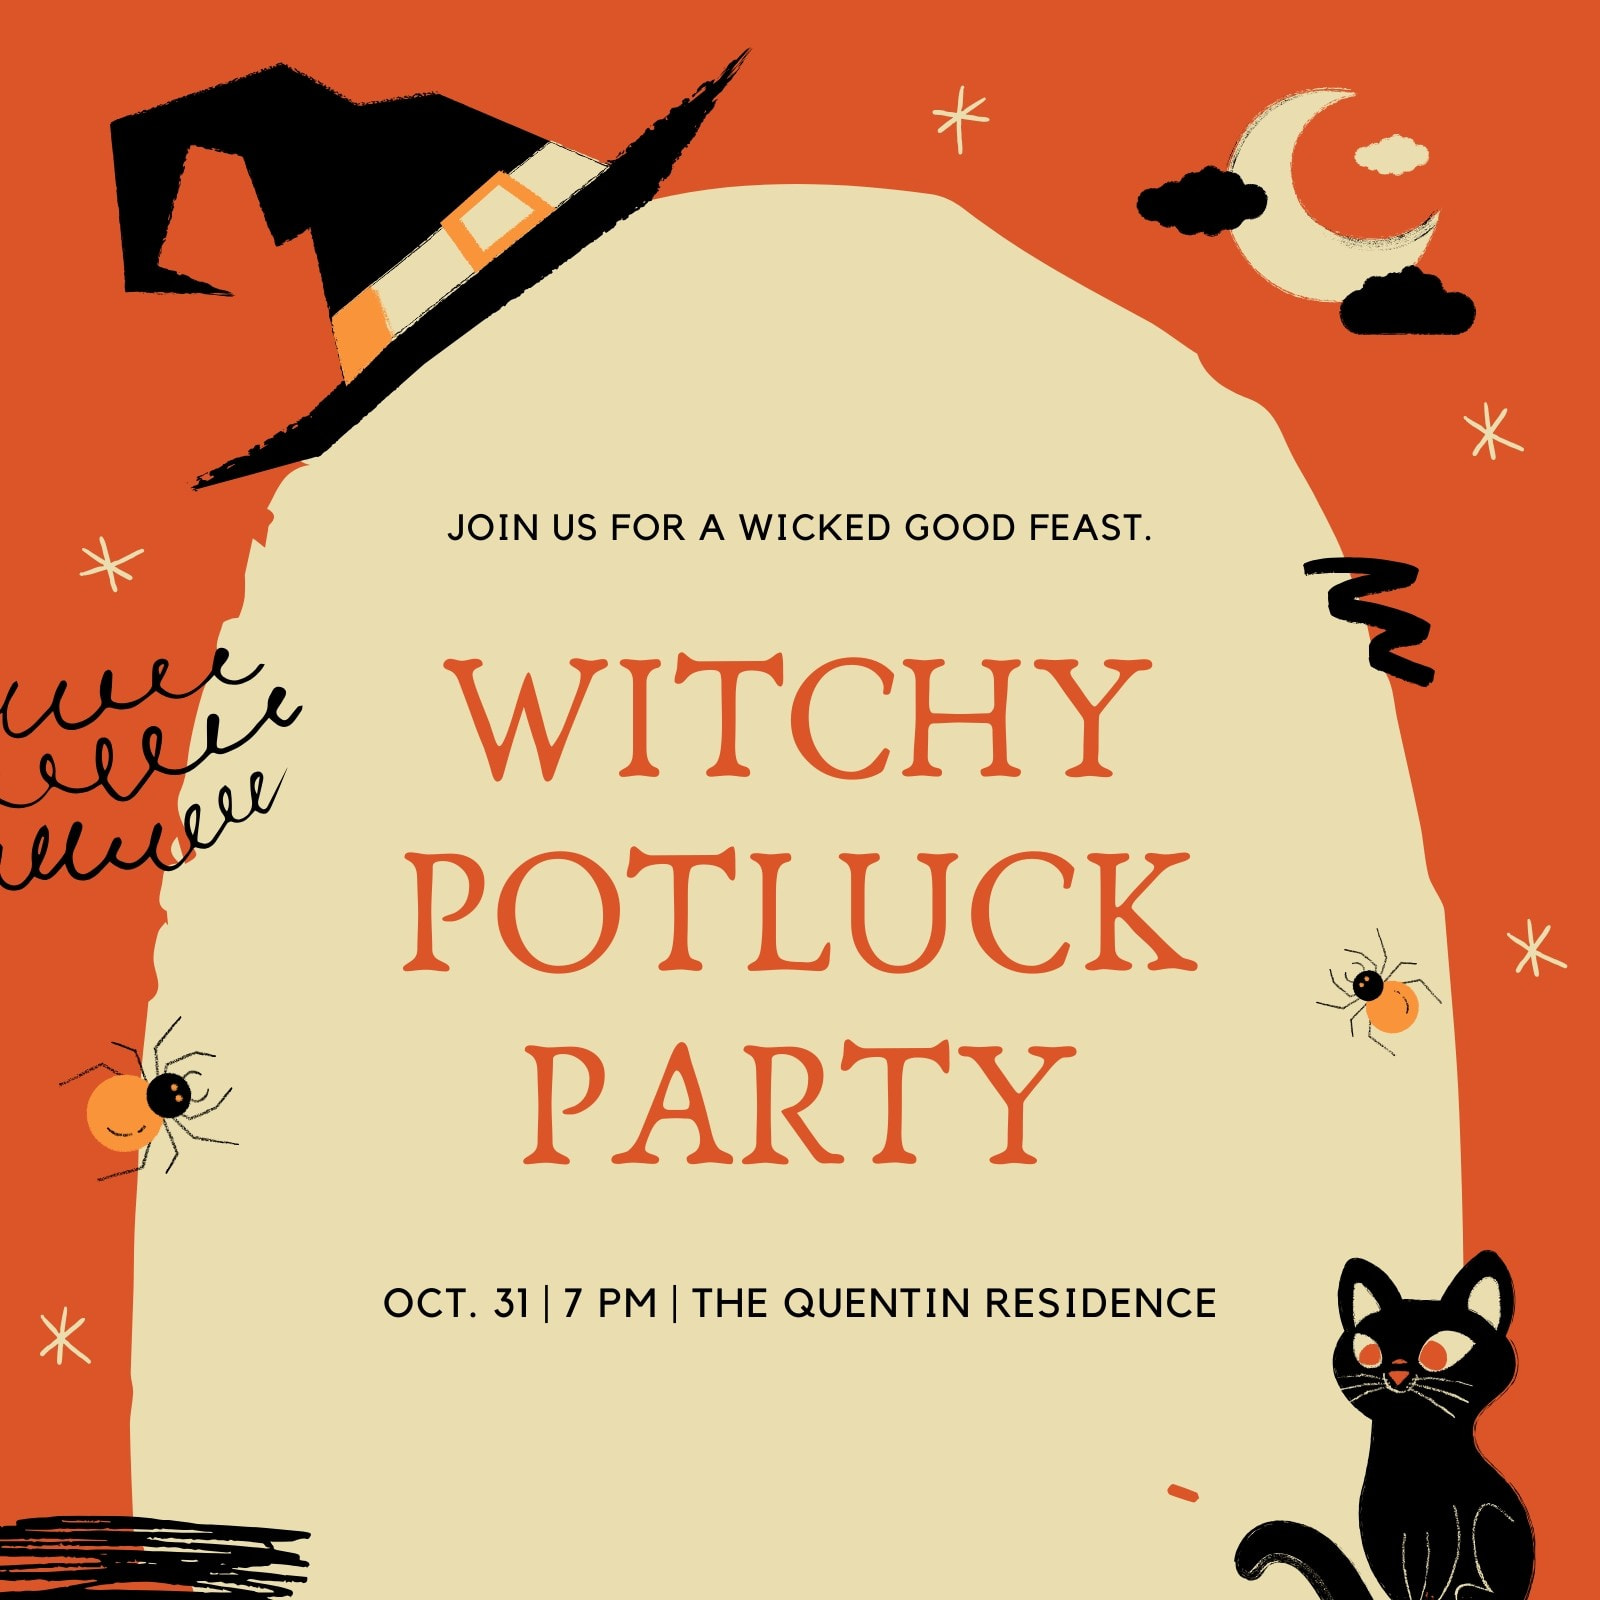 Orange and Yellow Witchy Hand-drawn Playful Halloween Potluck / Block Party Invitation